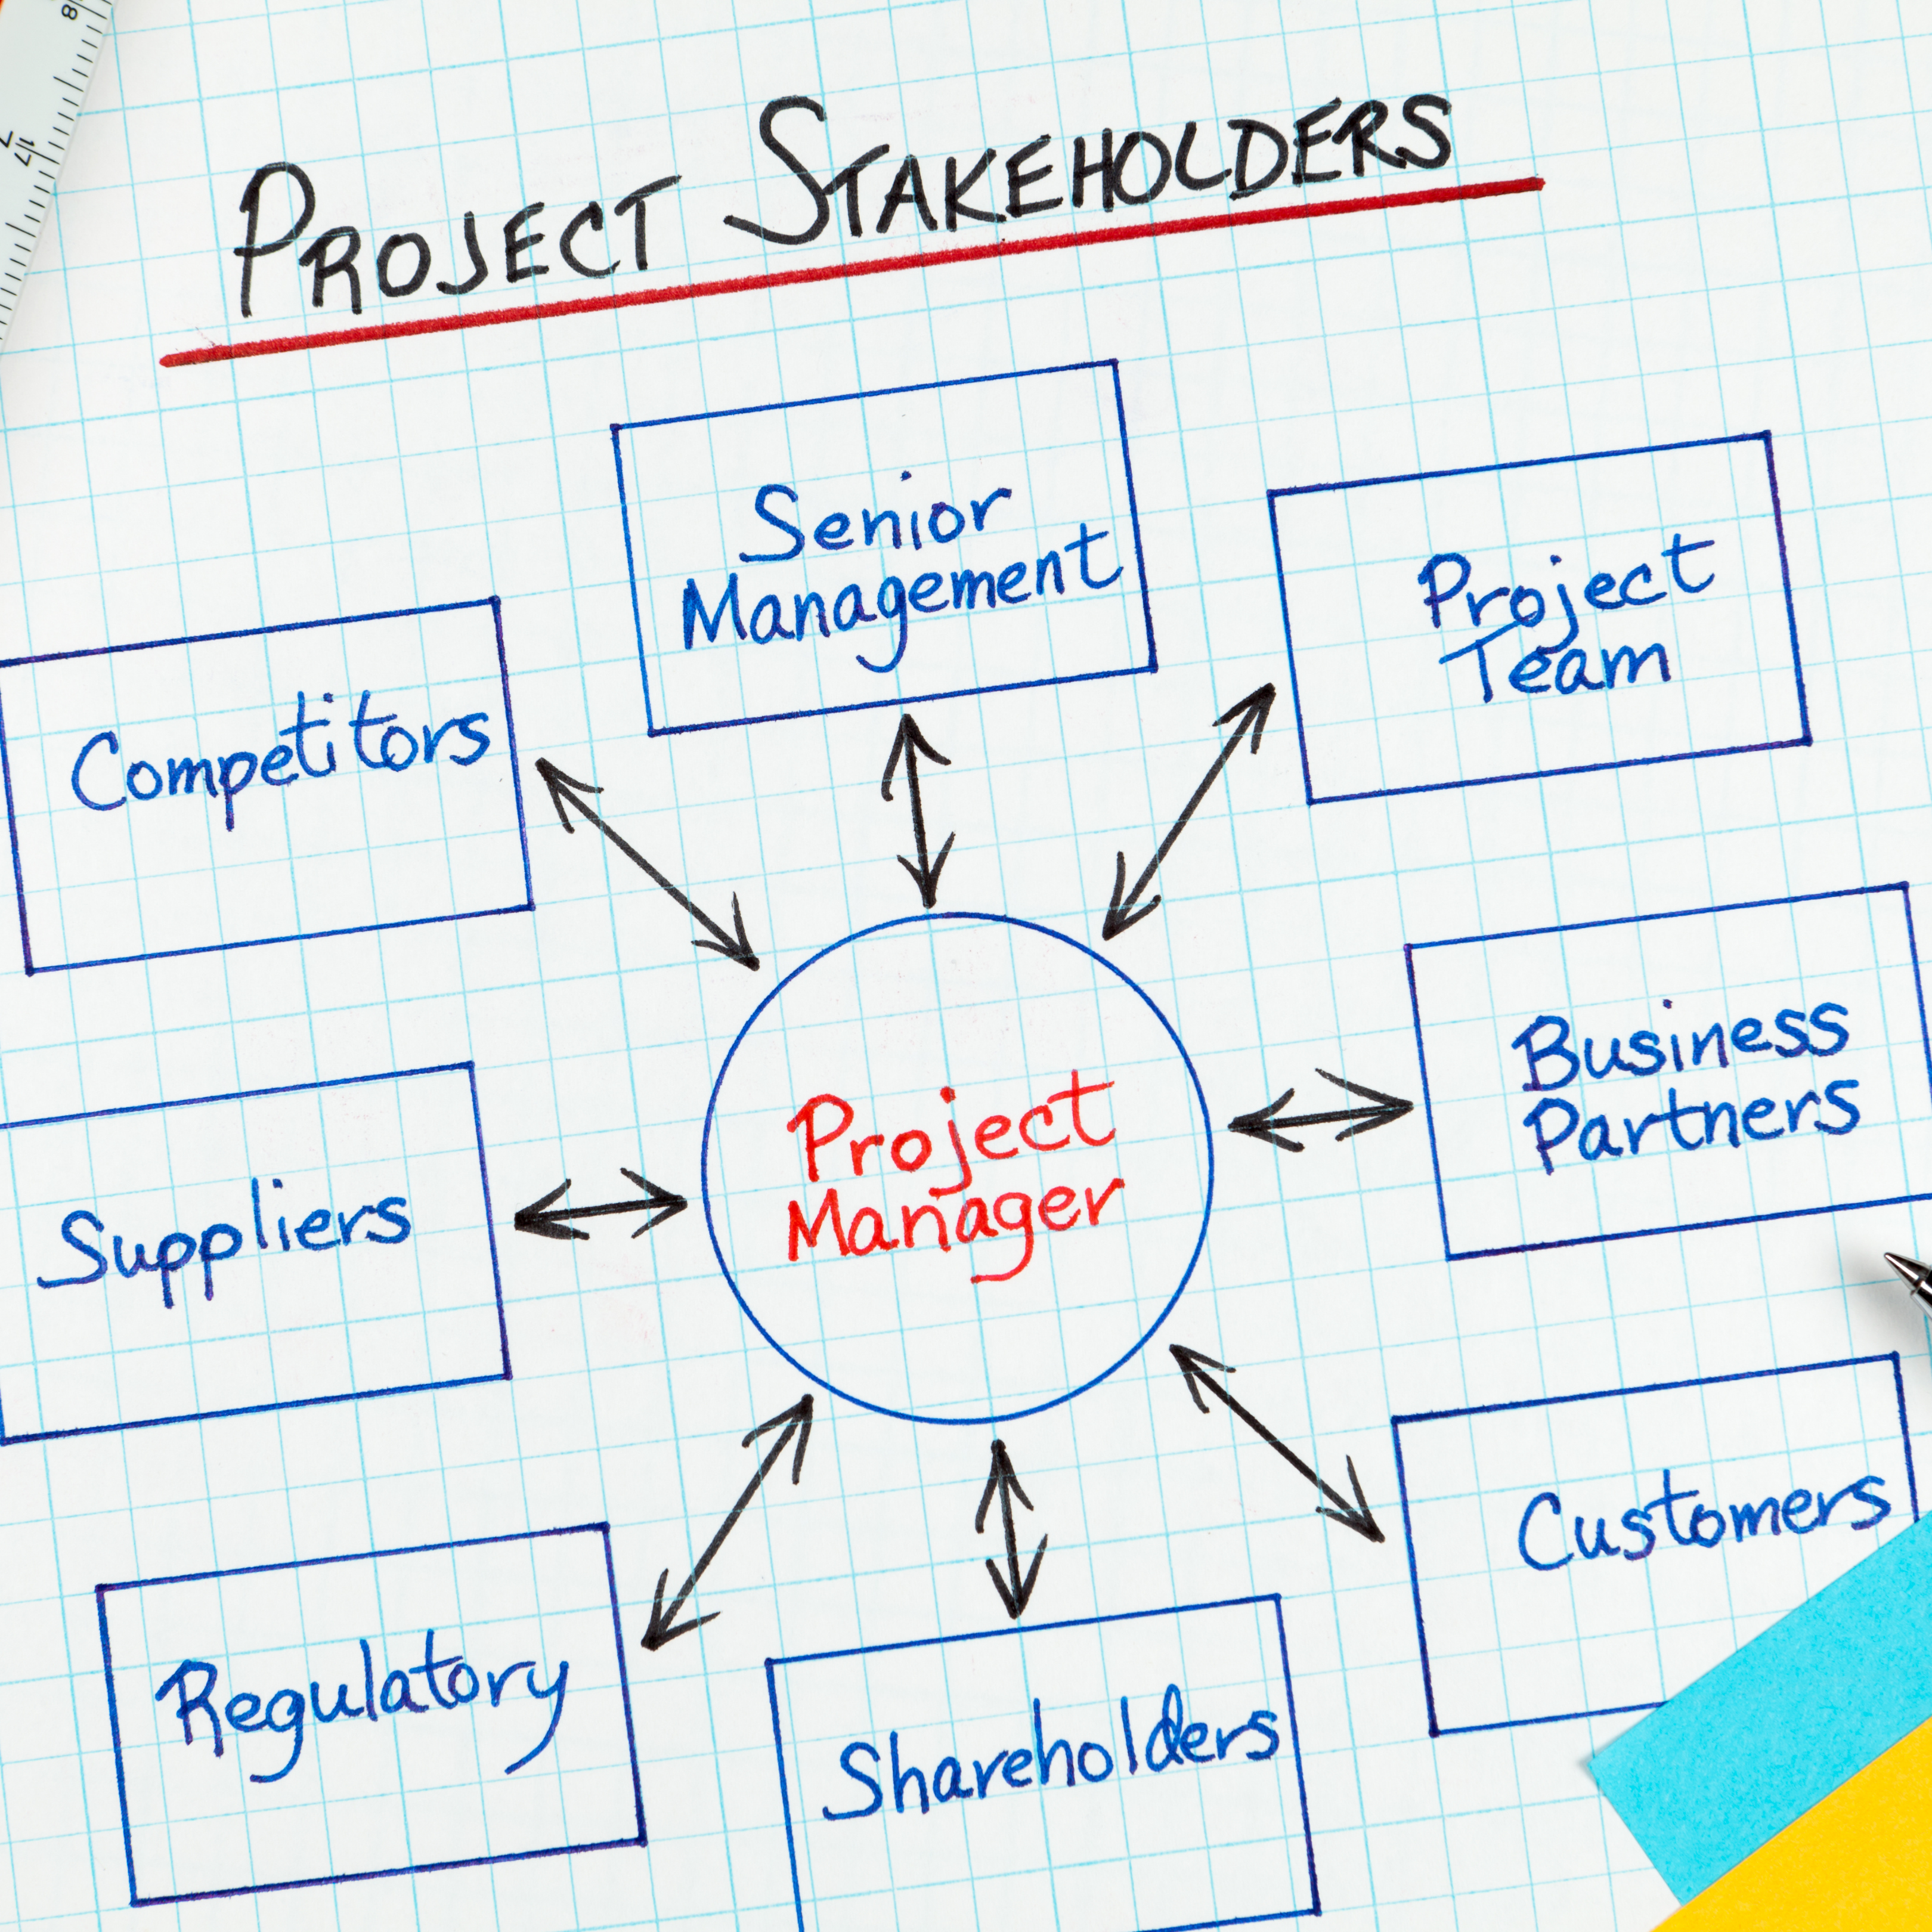 The roles of a project manager written out on graph paper.